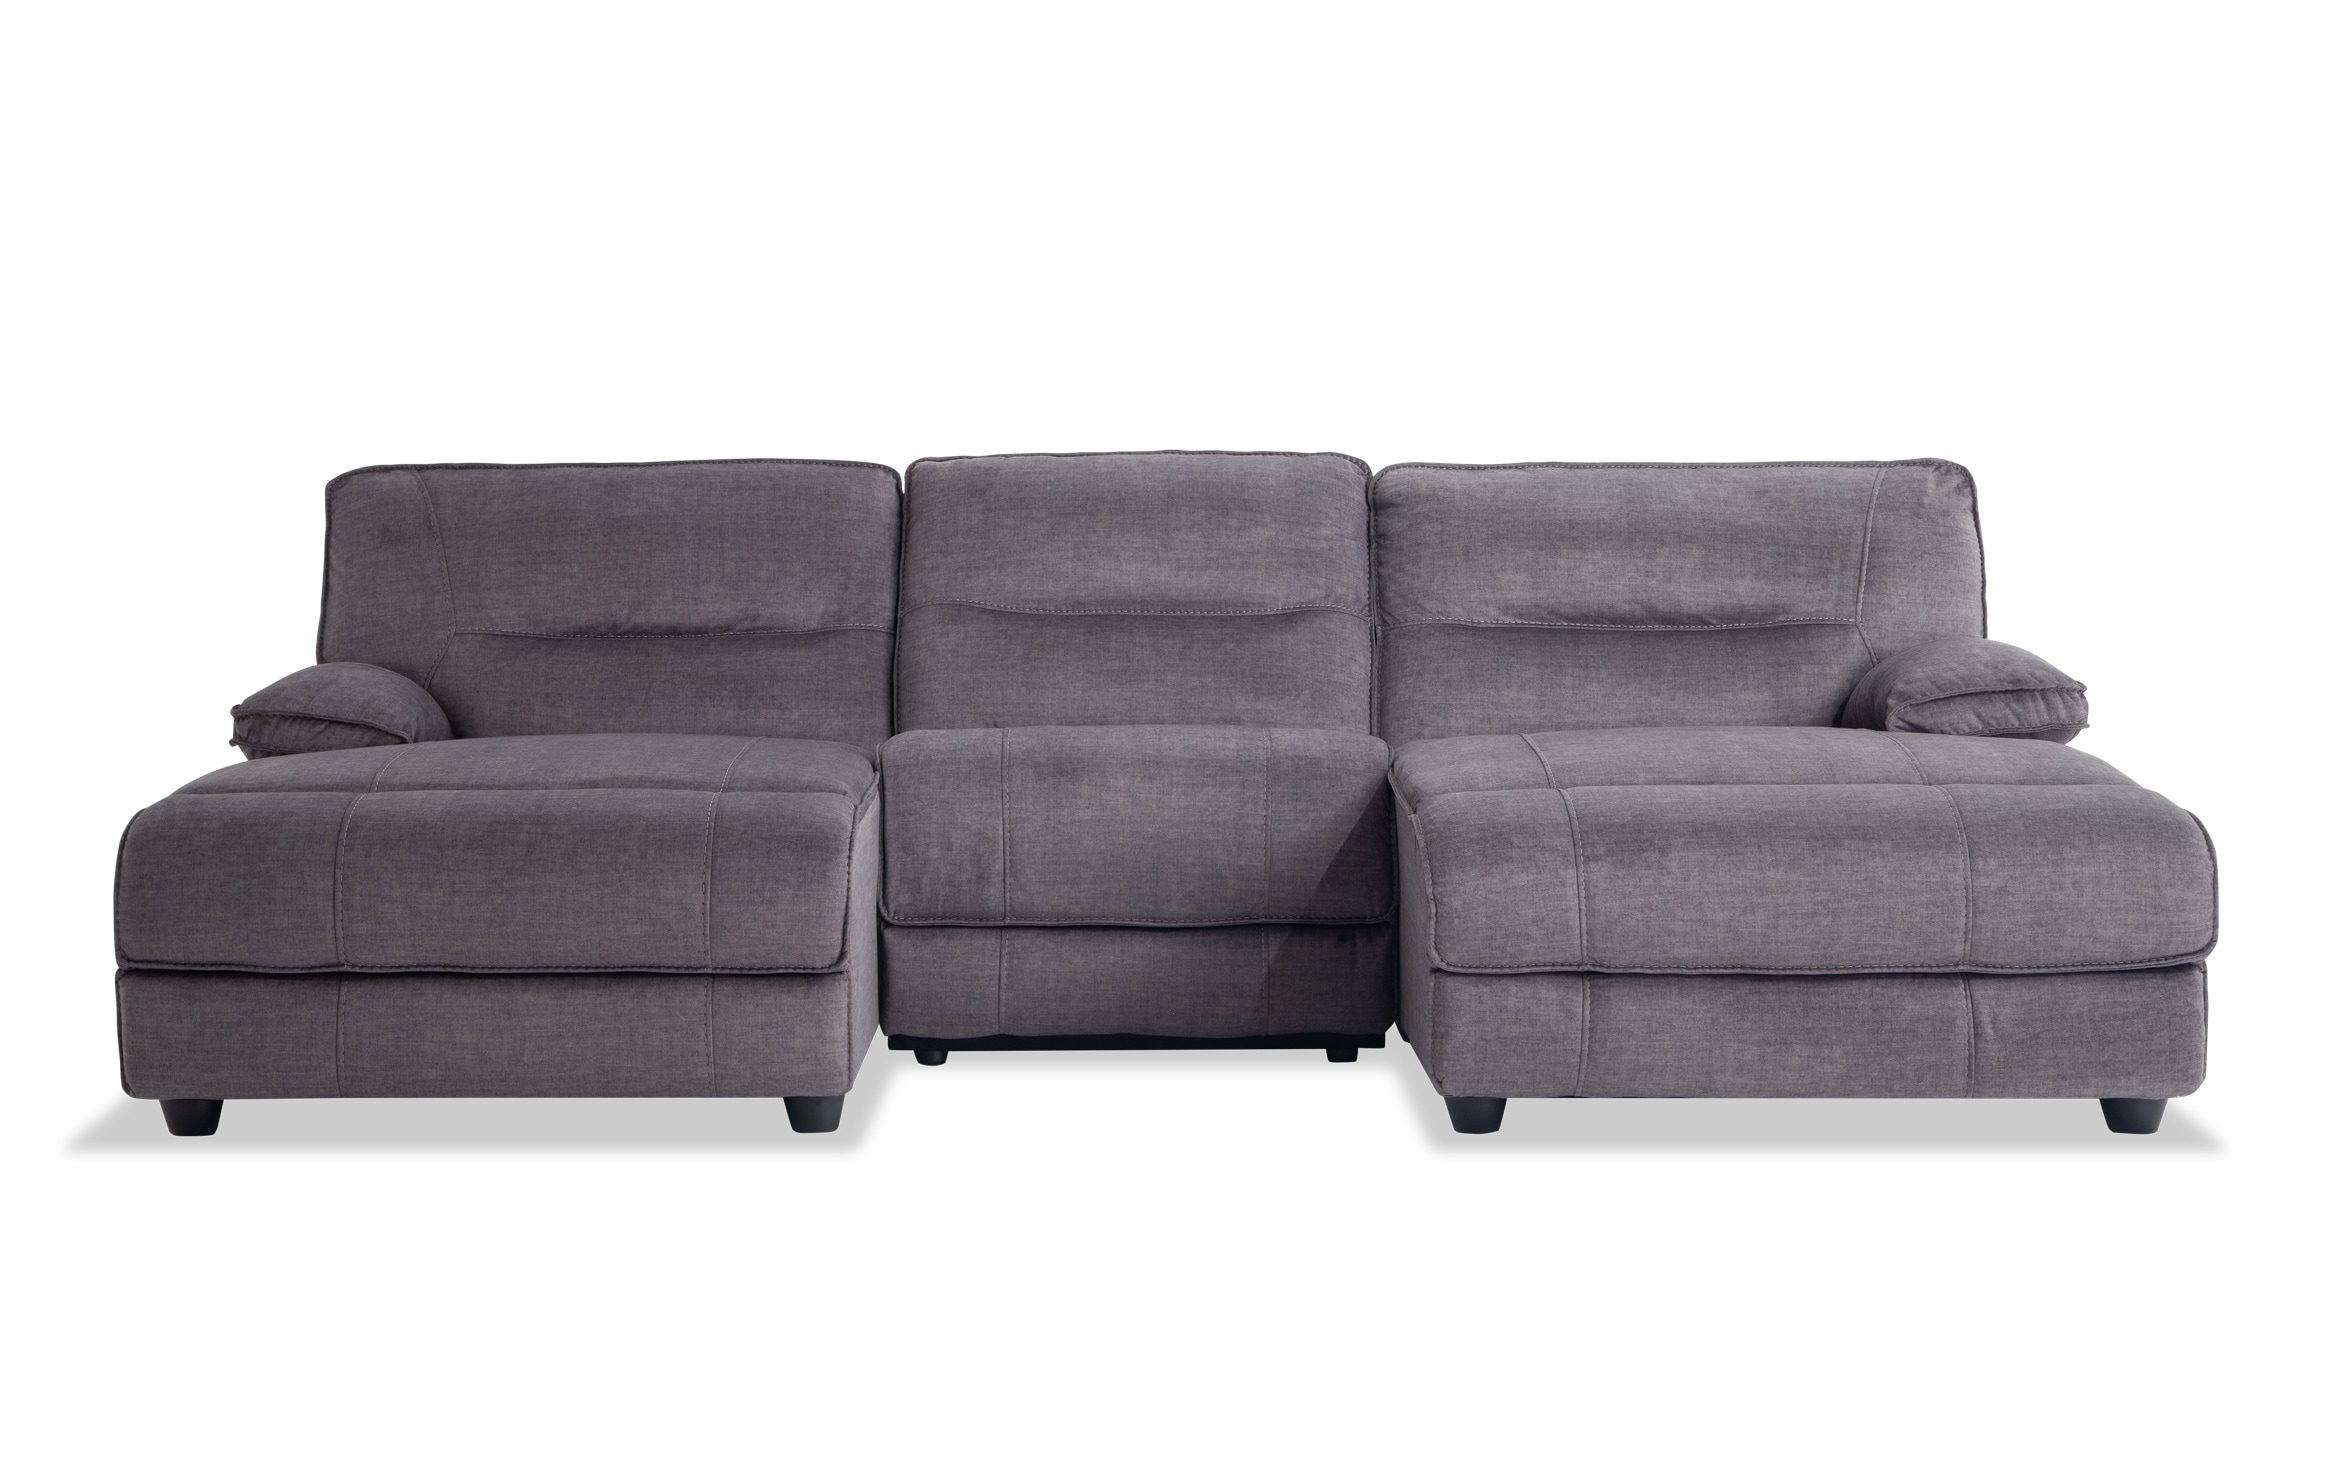 Bobs Furniture Pacifica – Home Ideas And More Within Pacifica Gray Power Reclining Sofas (View 1 of 15)